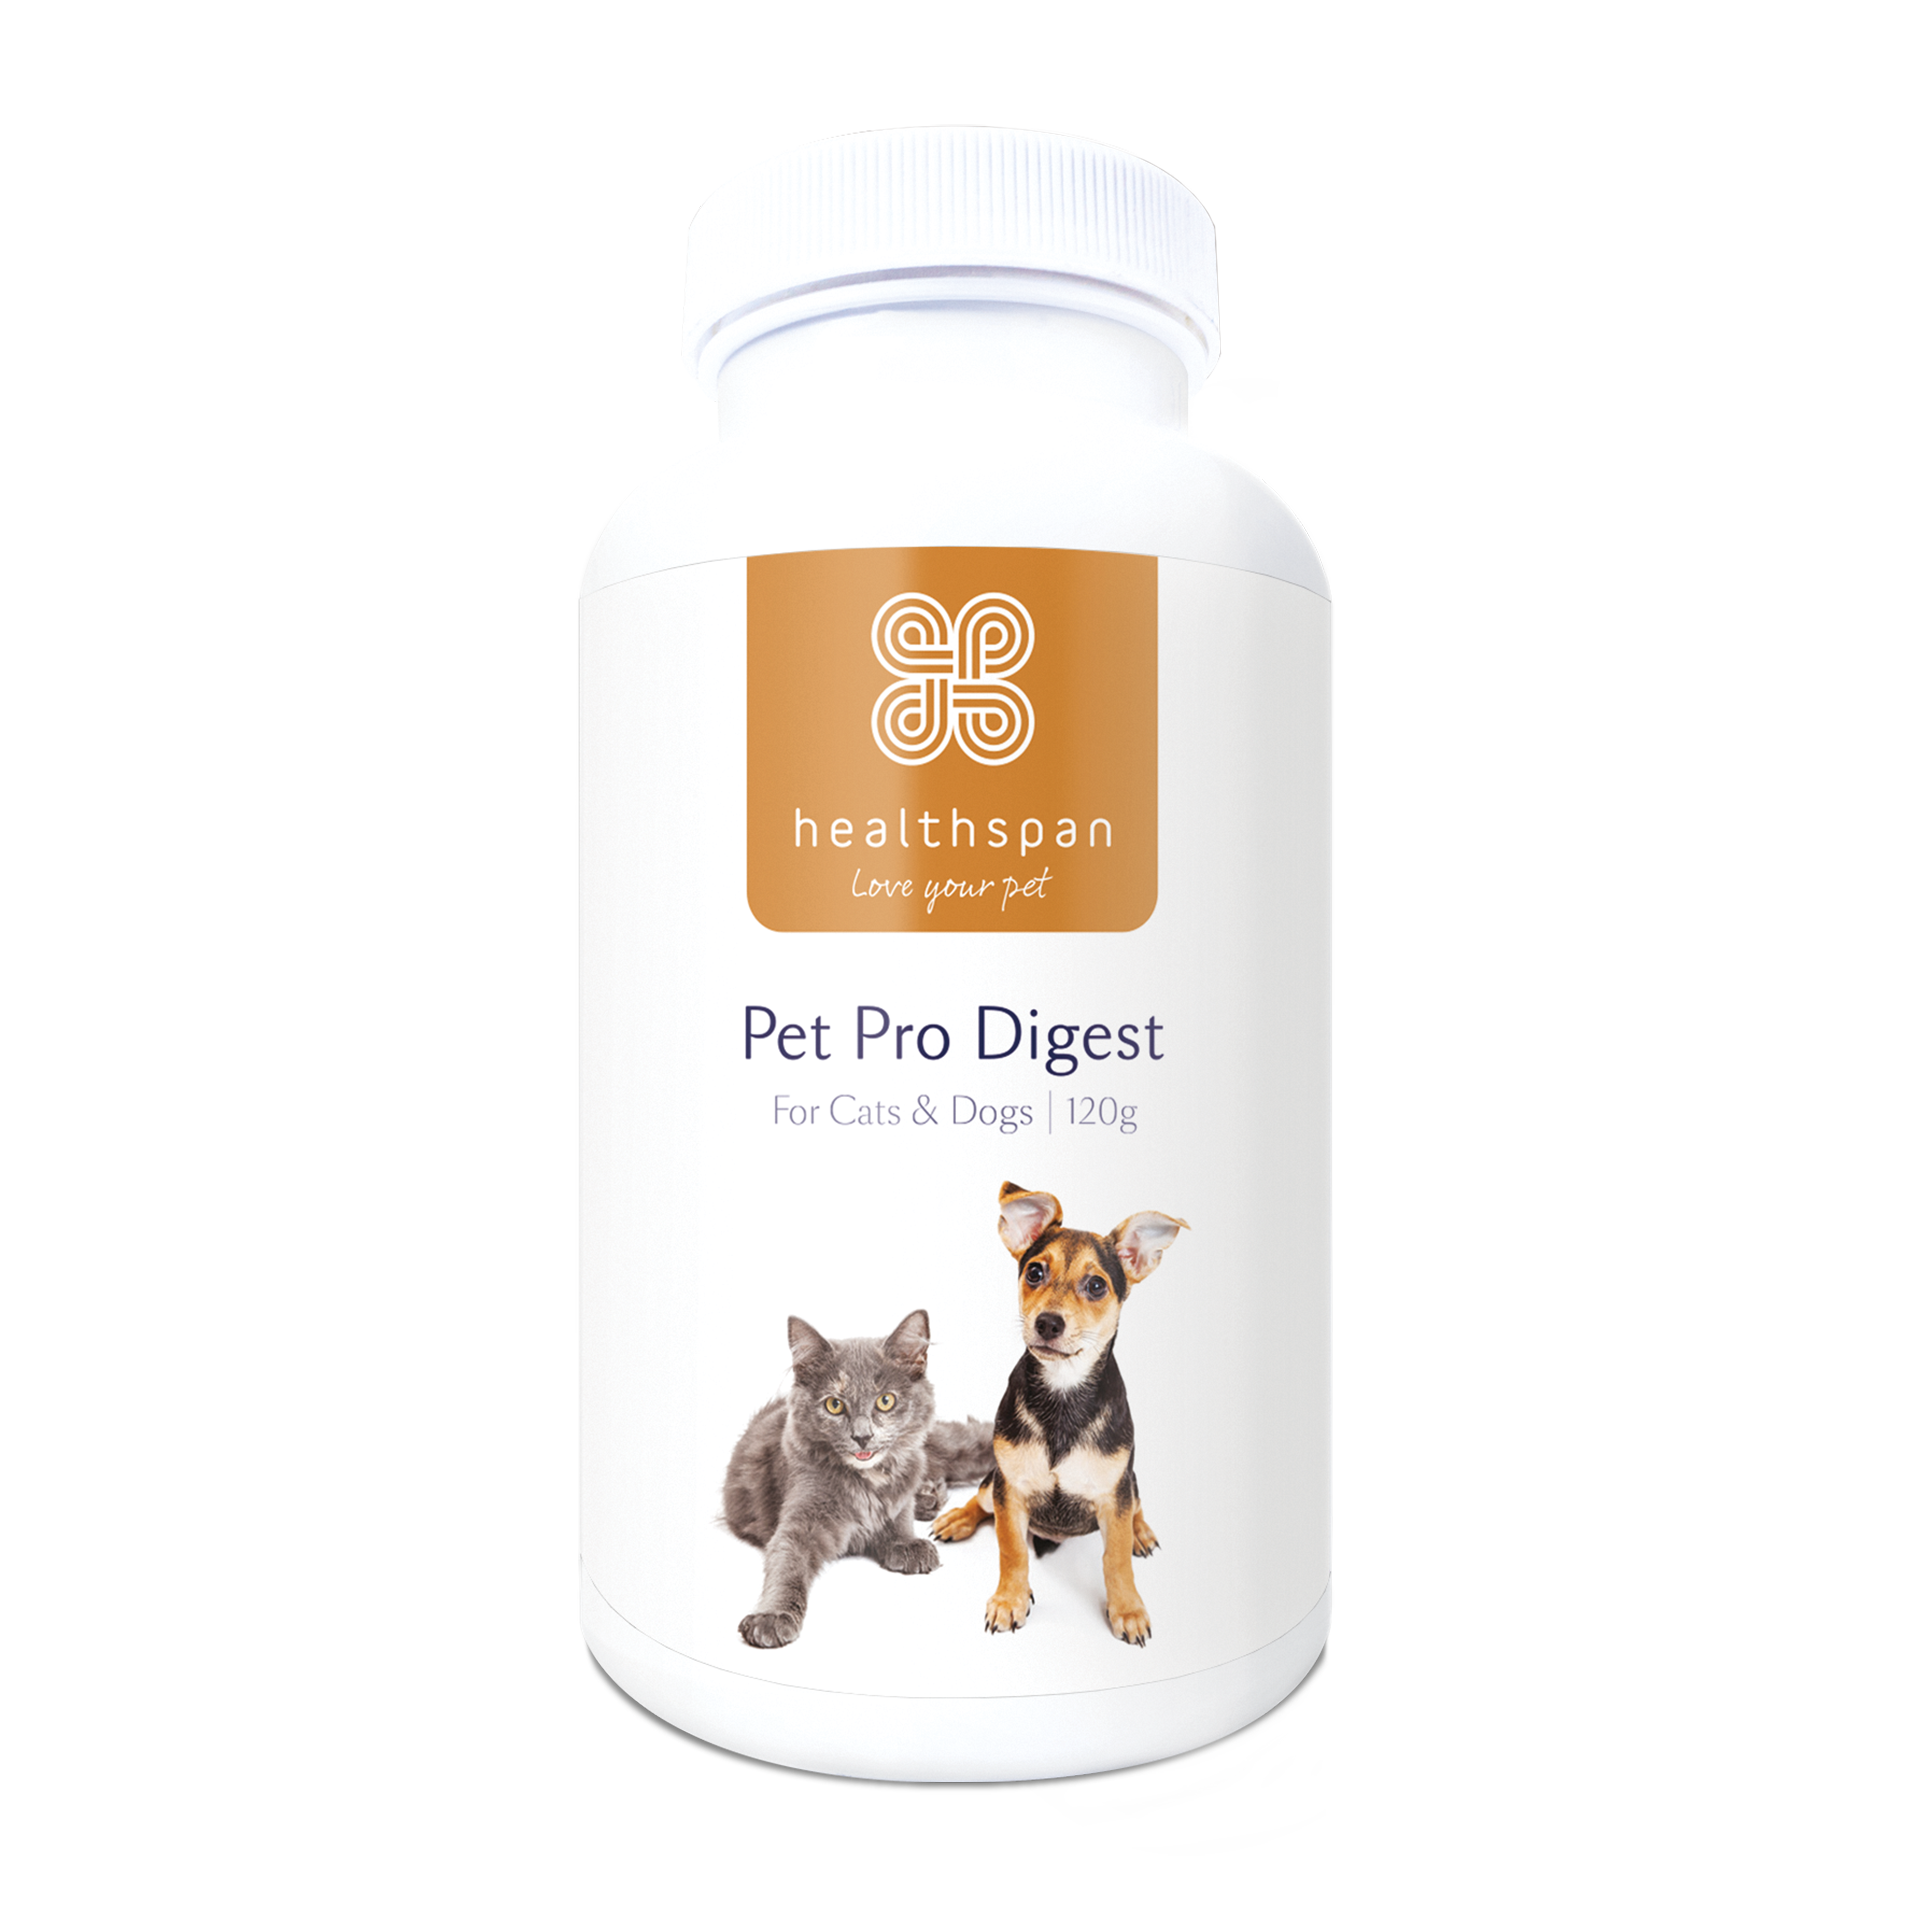 Pet Pro Digest tub